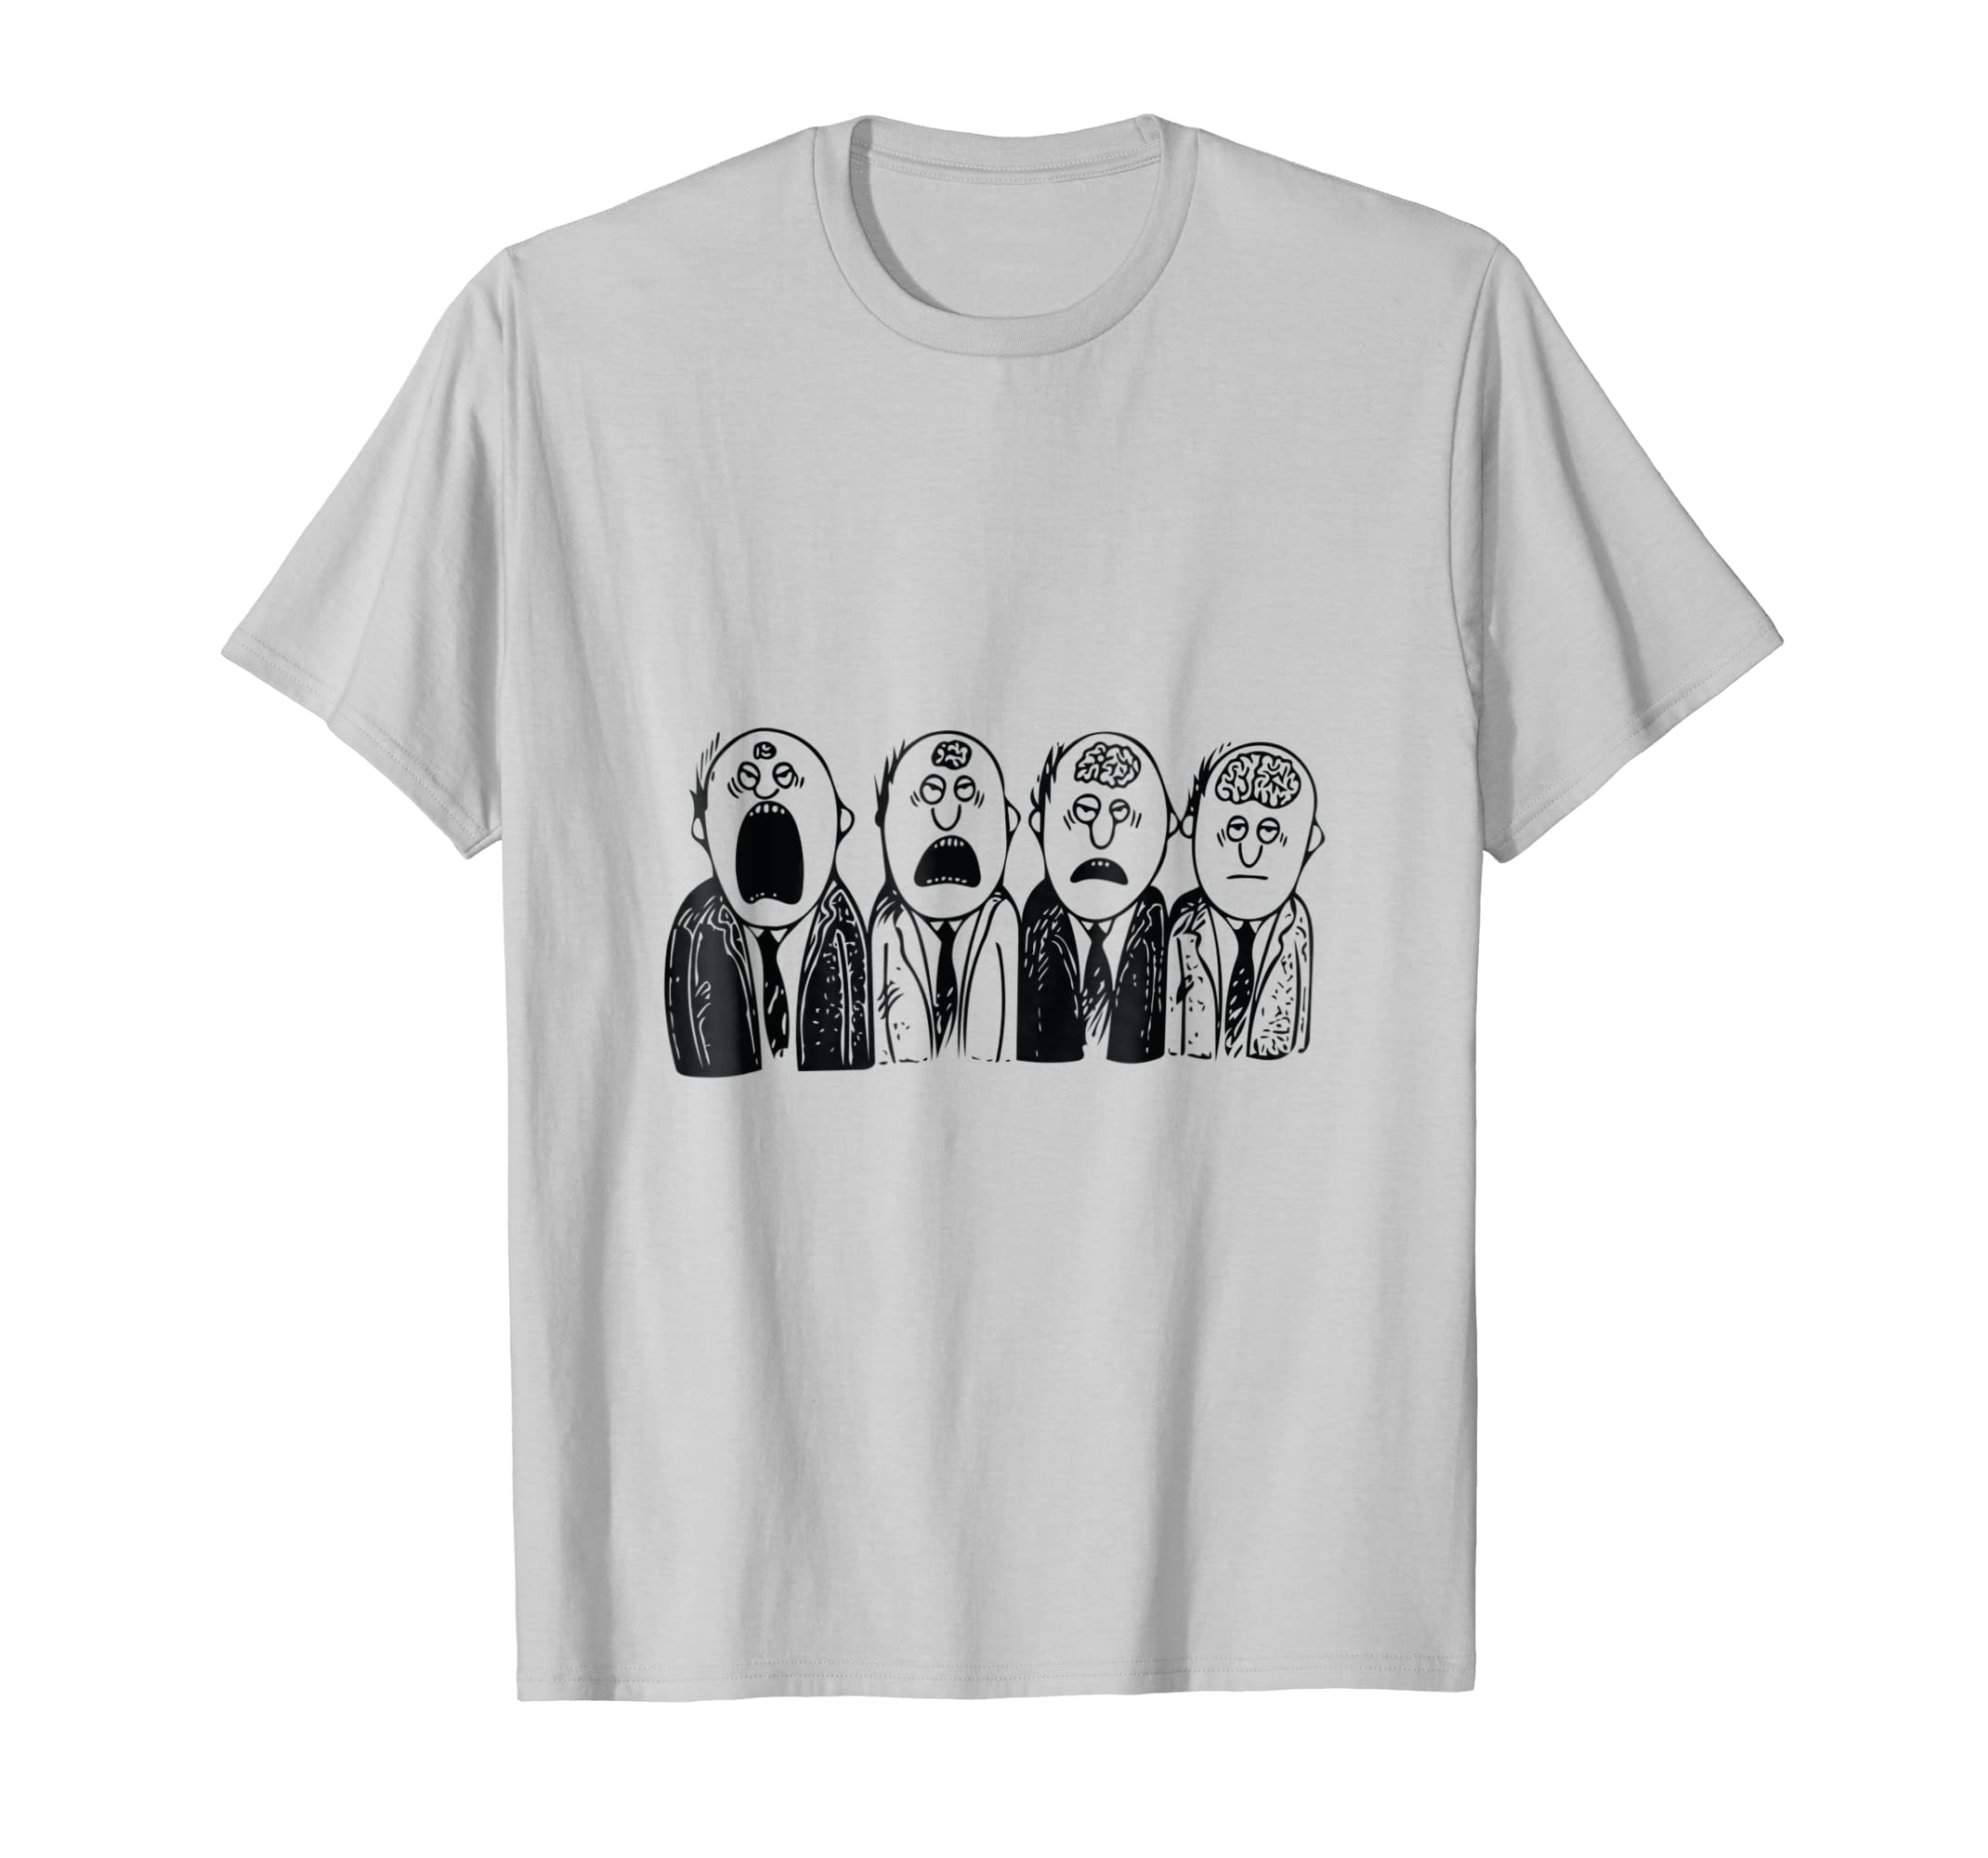 Be afraid of the quiet ones, they are thinking t shirt-azvn